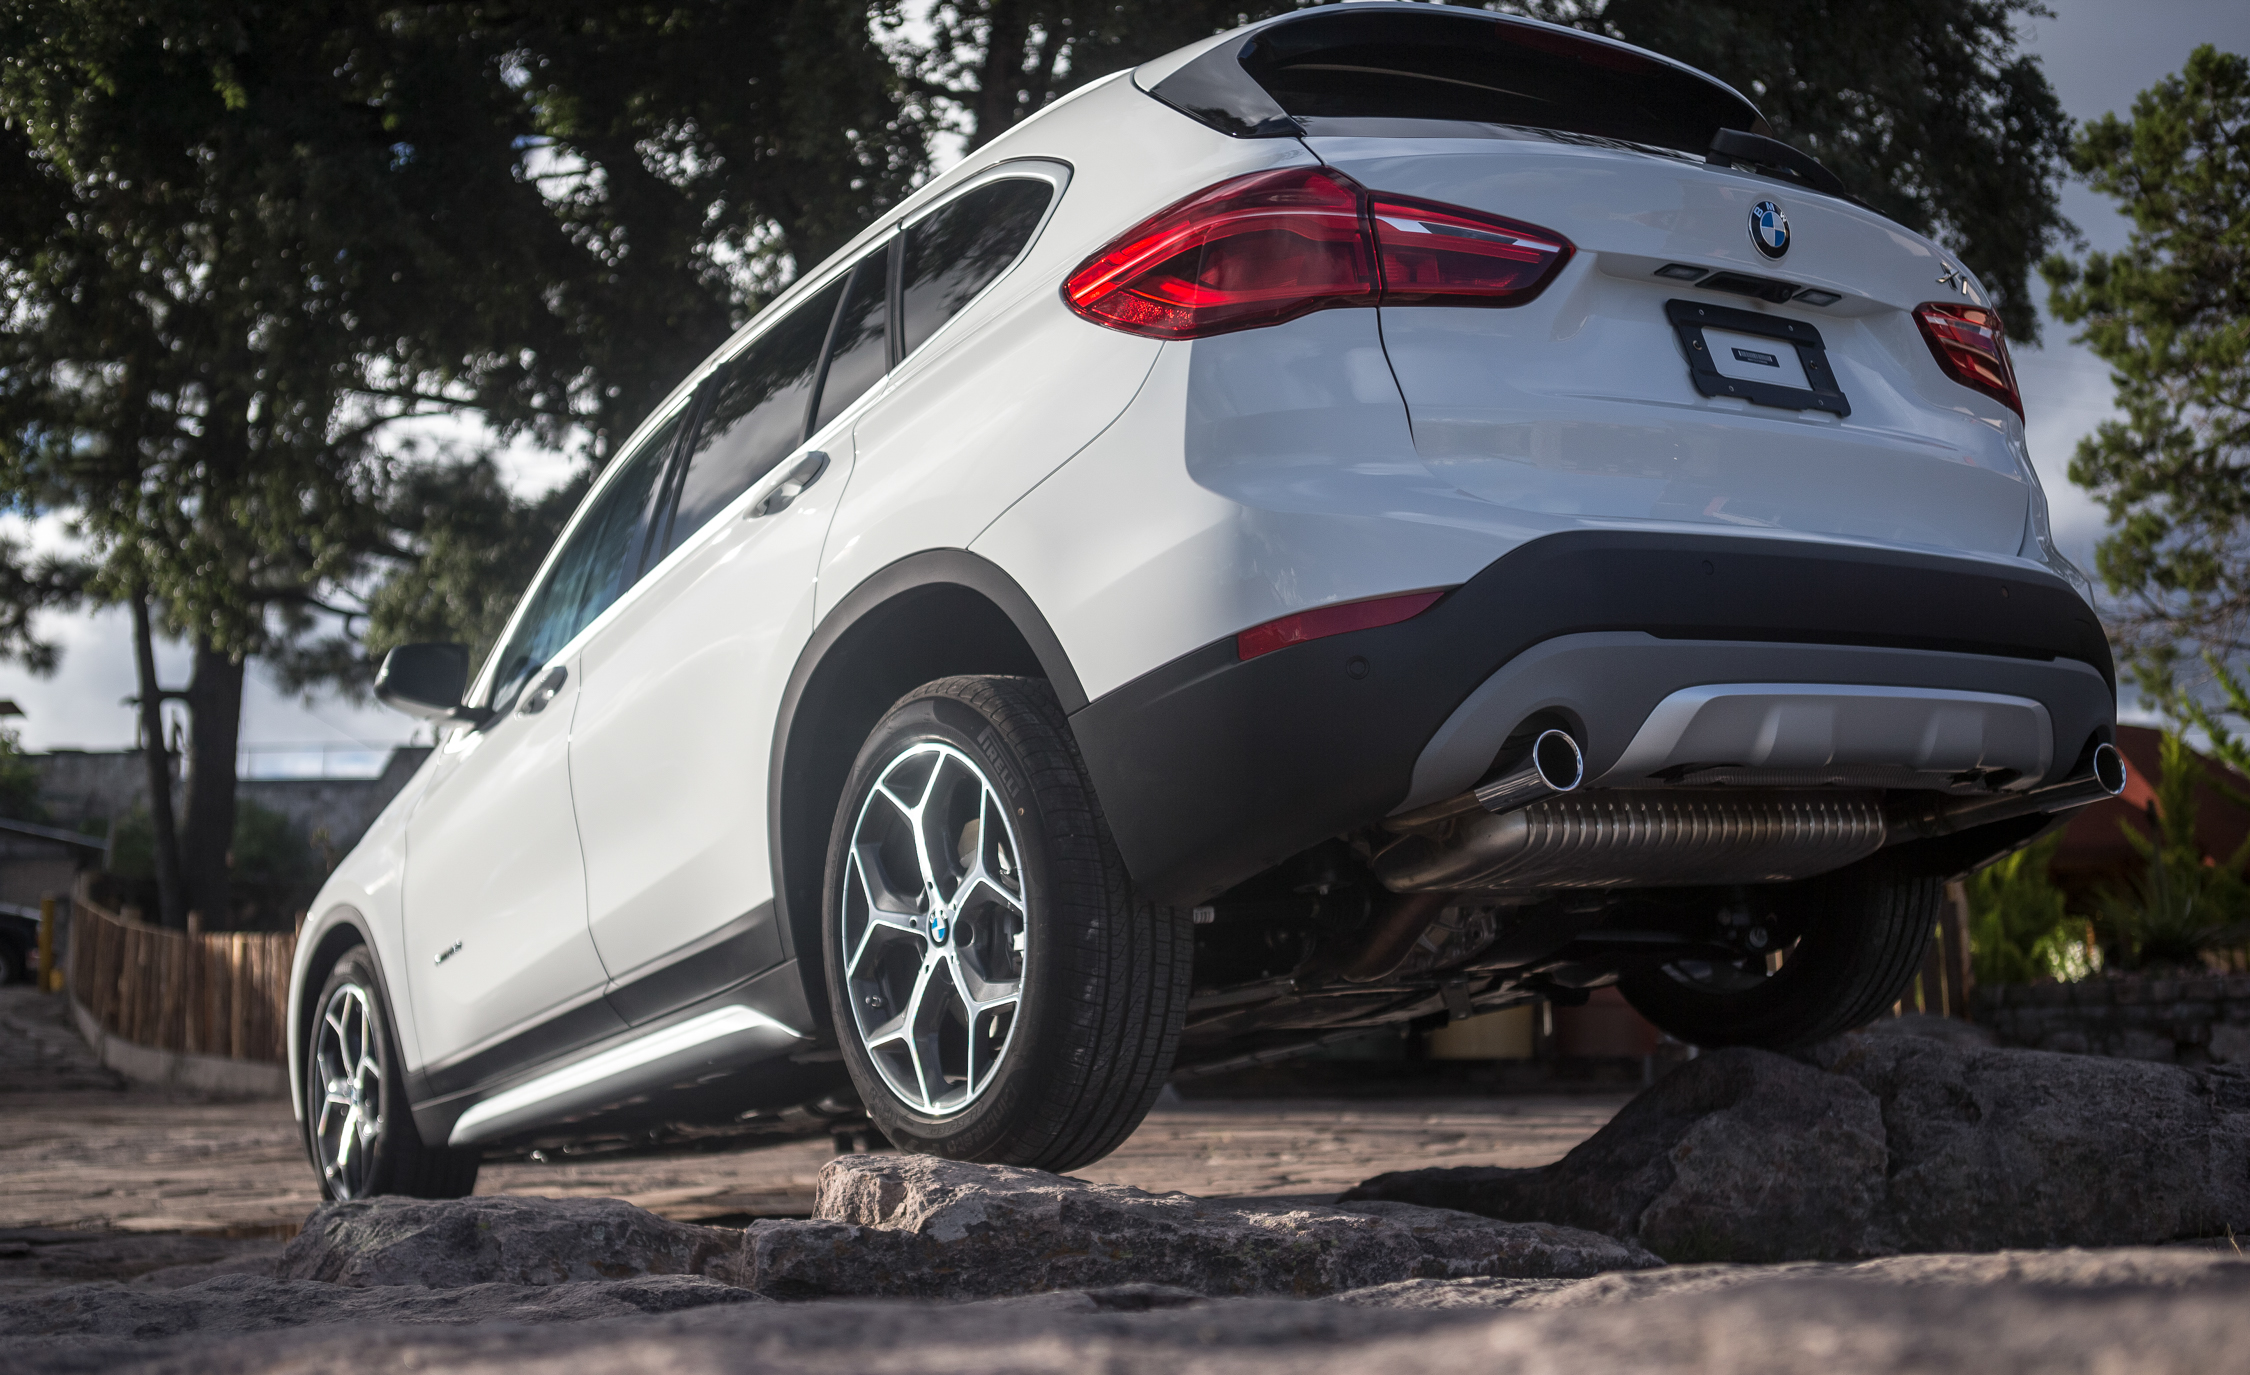 2016 BMW X1 Exterior White Metallic Rear And Side (Photo 32 of 36)